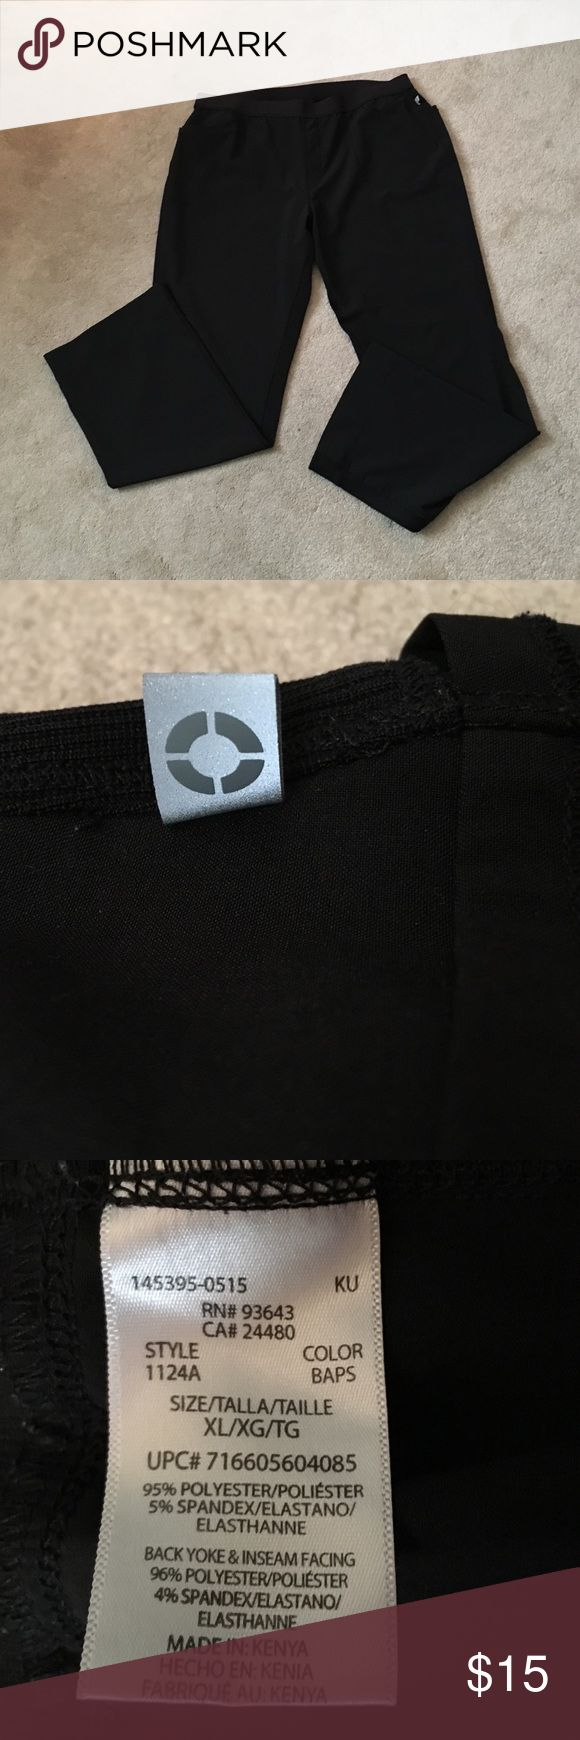 """Black Cherokee *Infinity* Scrub Pants These are by far the comfiest scrub pants I was able to find in my days in healthcare!!! I am no longer in the field so I'm selling my scrubs, but these are in LIKE NEW condition! Comfortable elastic waist. Last photo shows the material along the inner part of the leg. I can't stress how comfy these are all around. It's Cherokee's """"Infinity"""" line. Flowy, smooth material that you barely feel!! Smoke free home! I have an awesome black & pink scrub top…"""